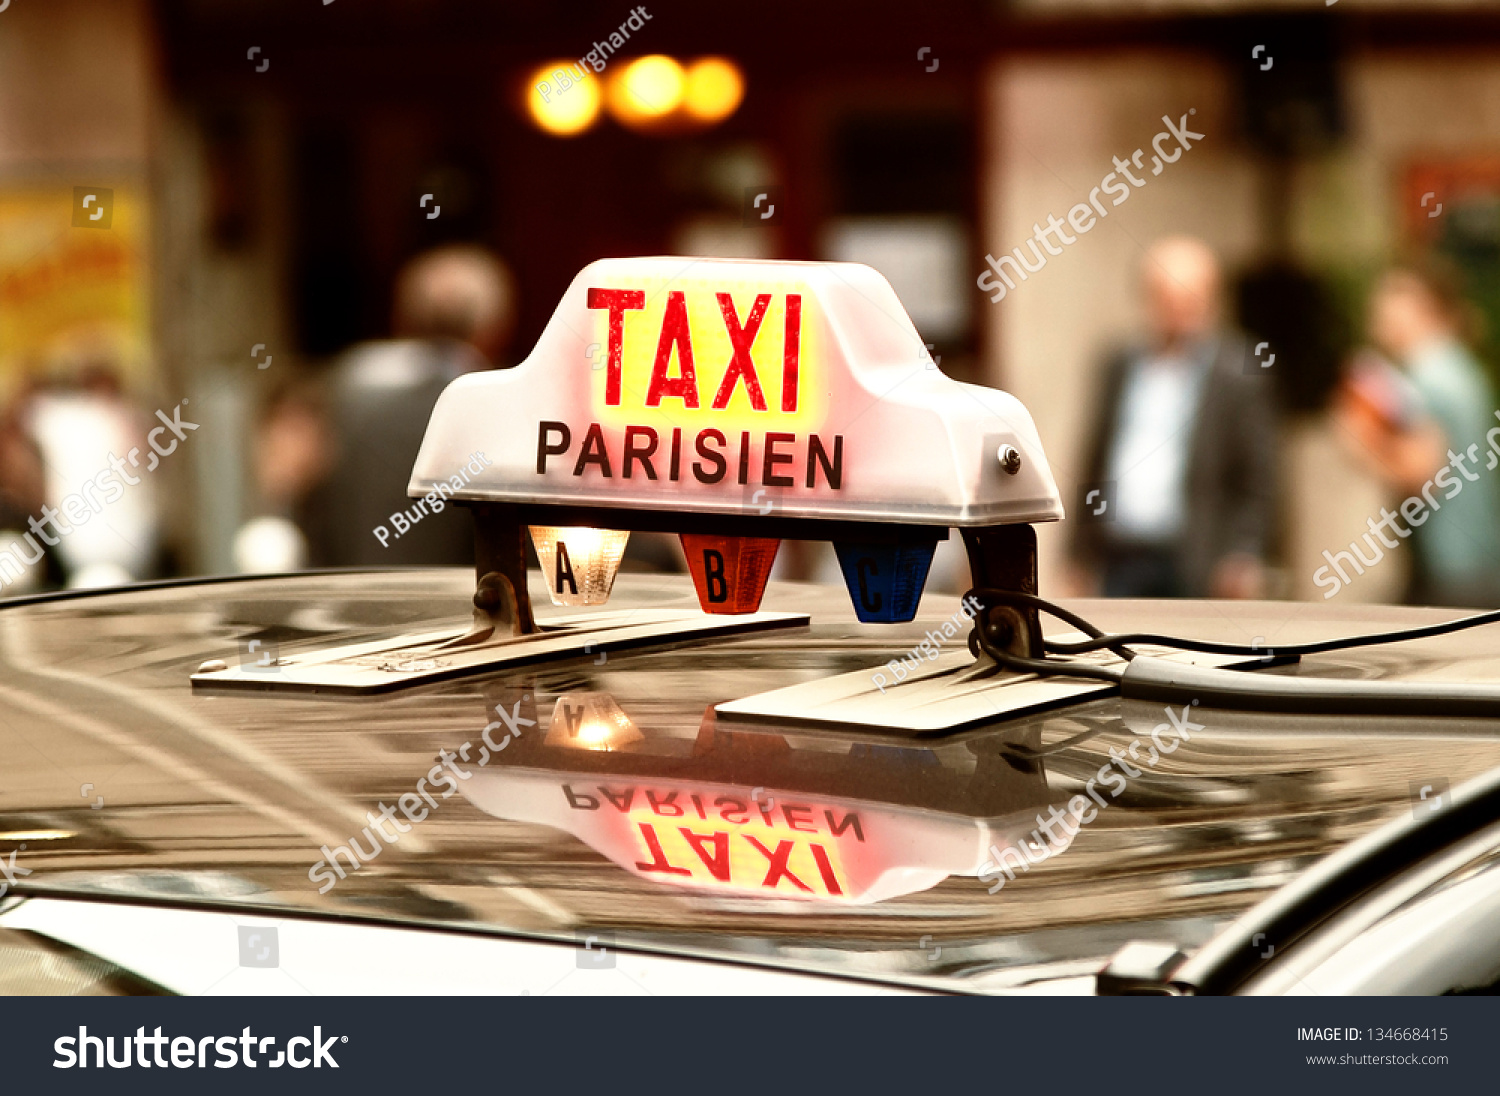 taxi parisien stock photo 134668415 shutterstock. Black Bedroom Furniture Sets. Home Design Ideas